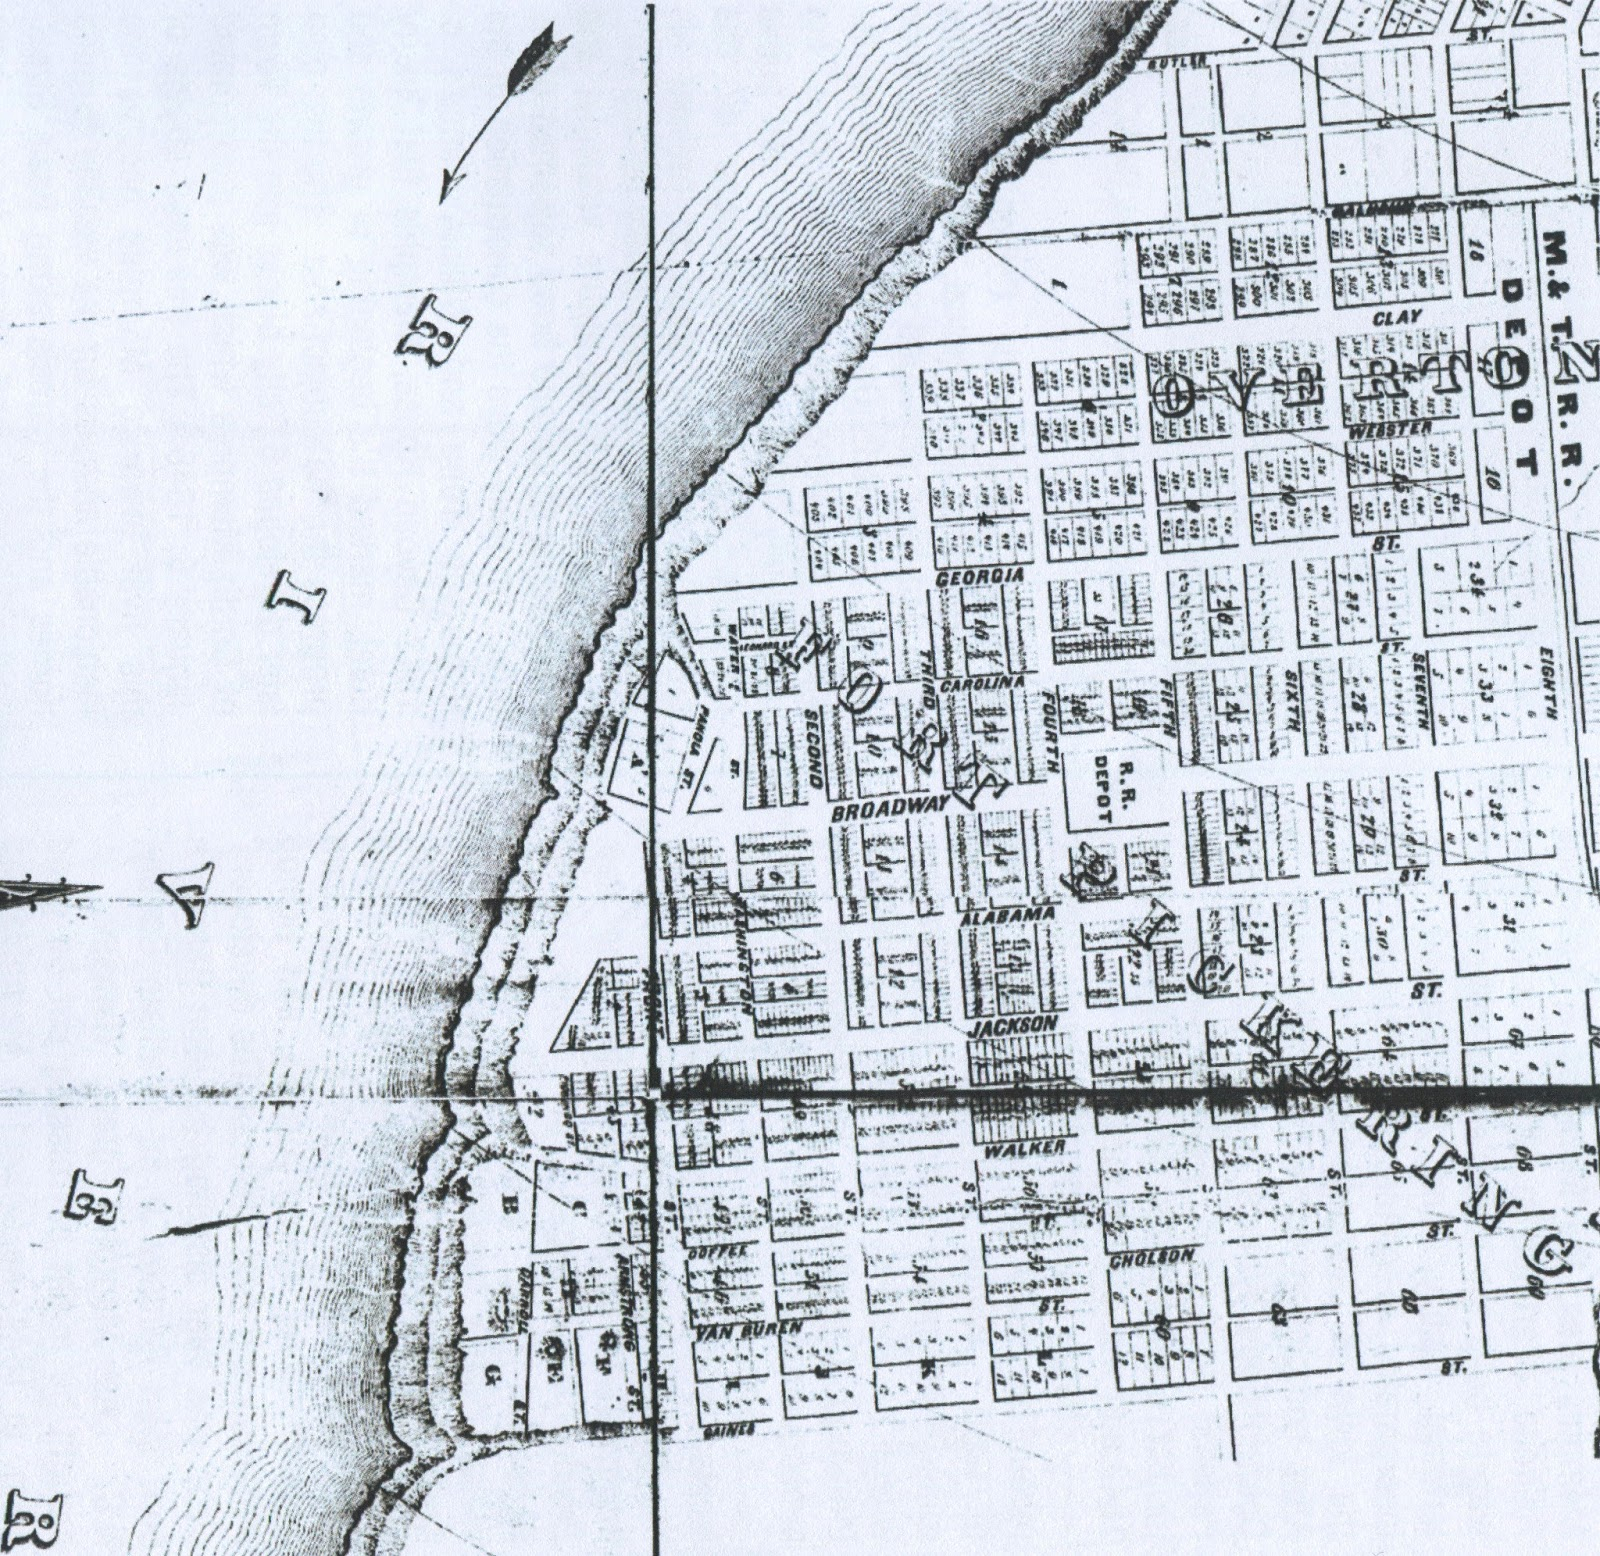 this old map shows the fort pickering subdivision note that the original state streets were georgia and carolina broadway essentially became railroad